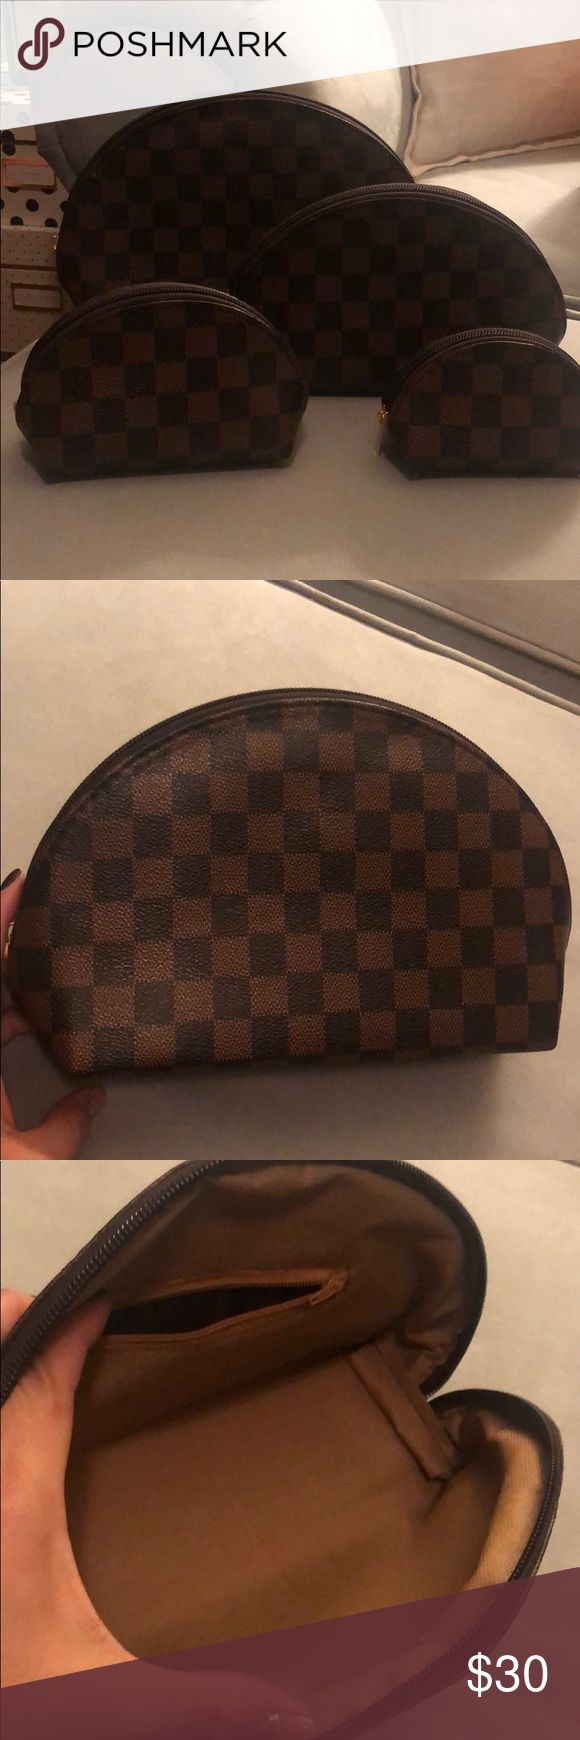 Set of 4 cosmetic bags in brown checkered pattern (With